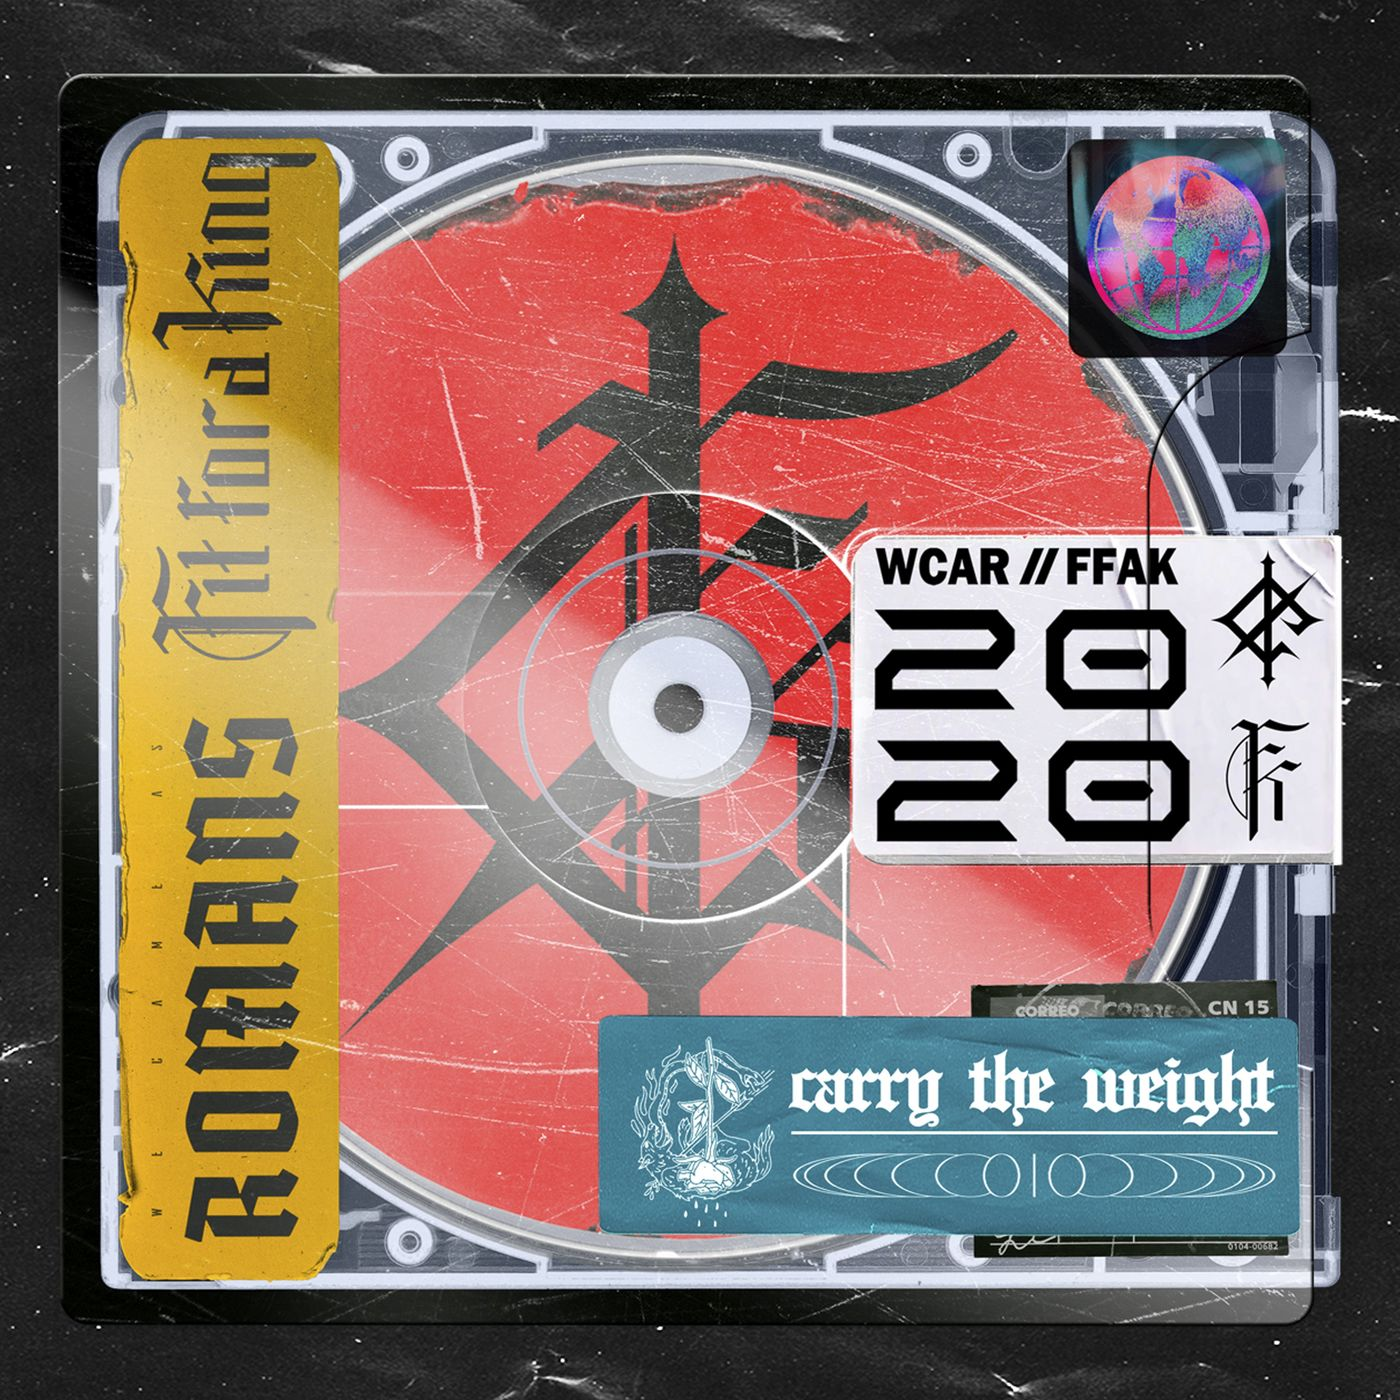 We Came As Romans - Carry the Weight [single] (2020)